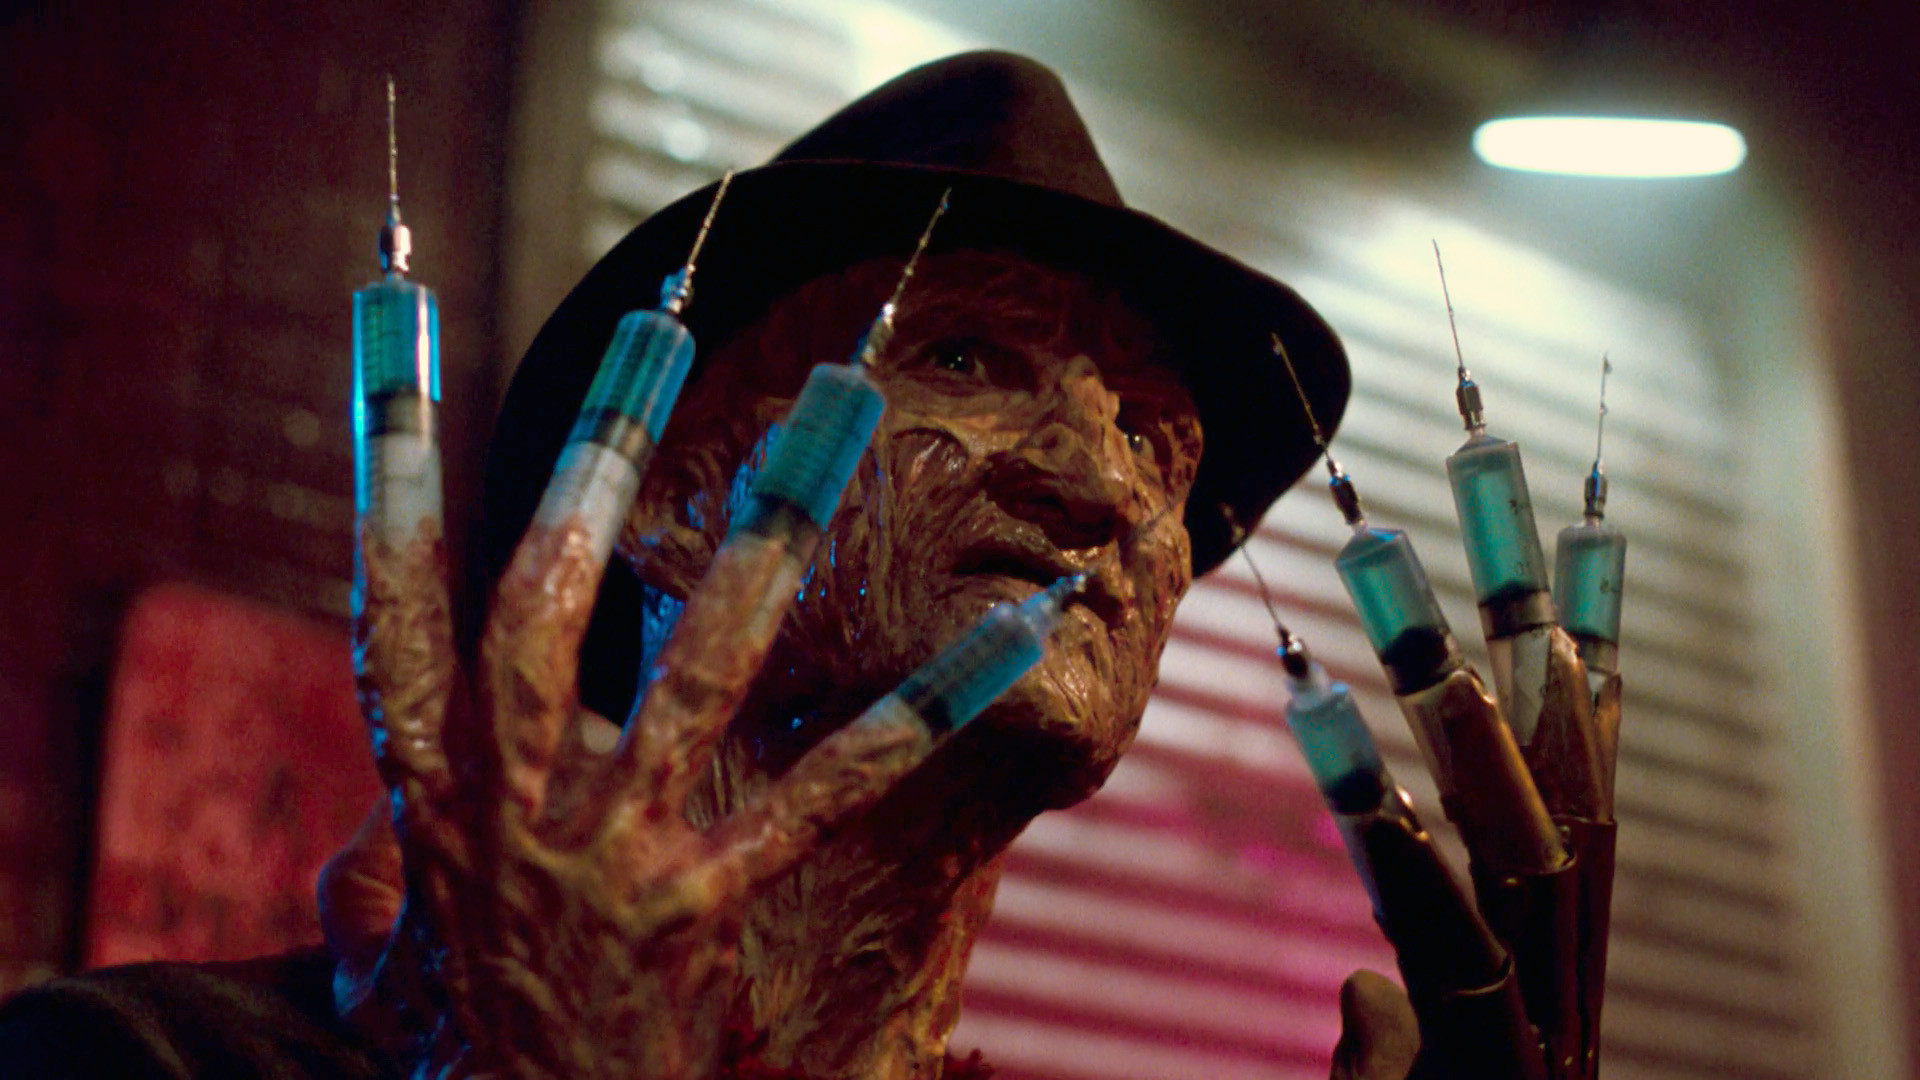 freddy krueger nightmare on elm street